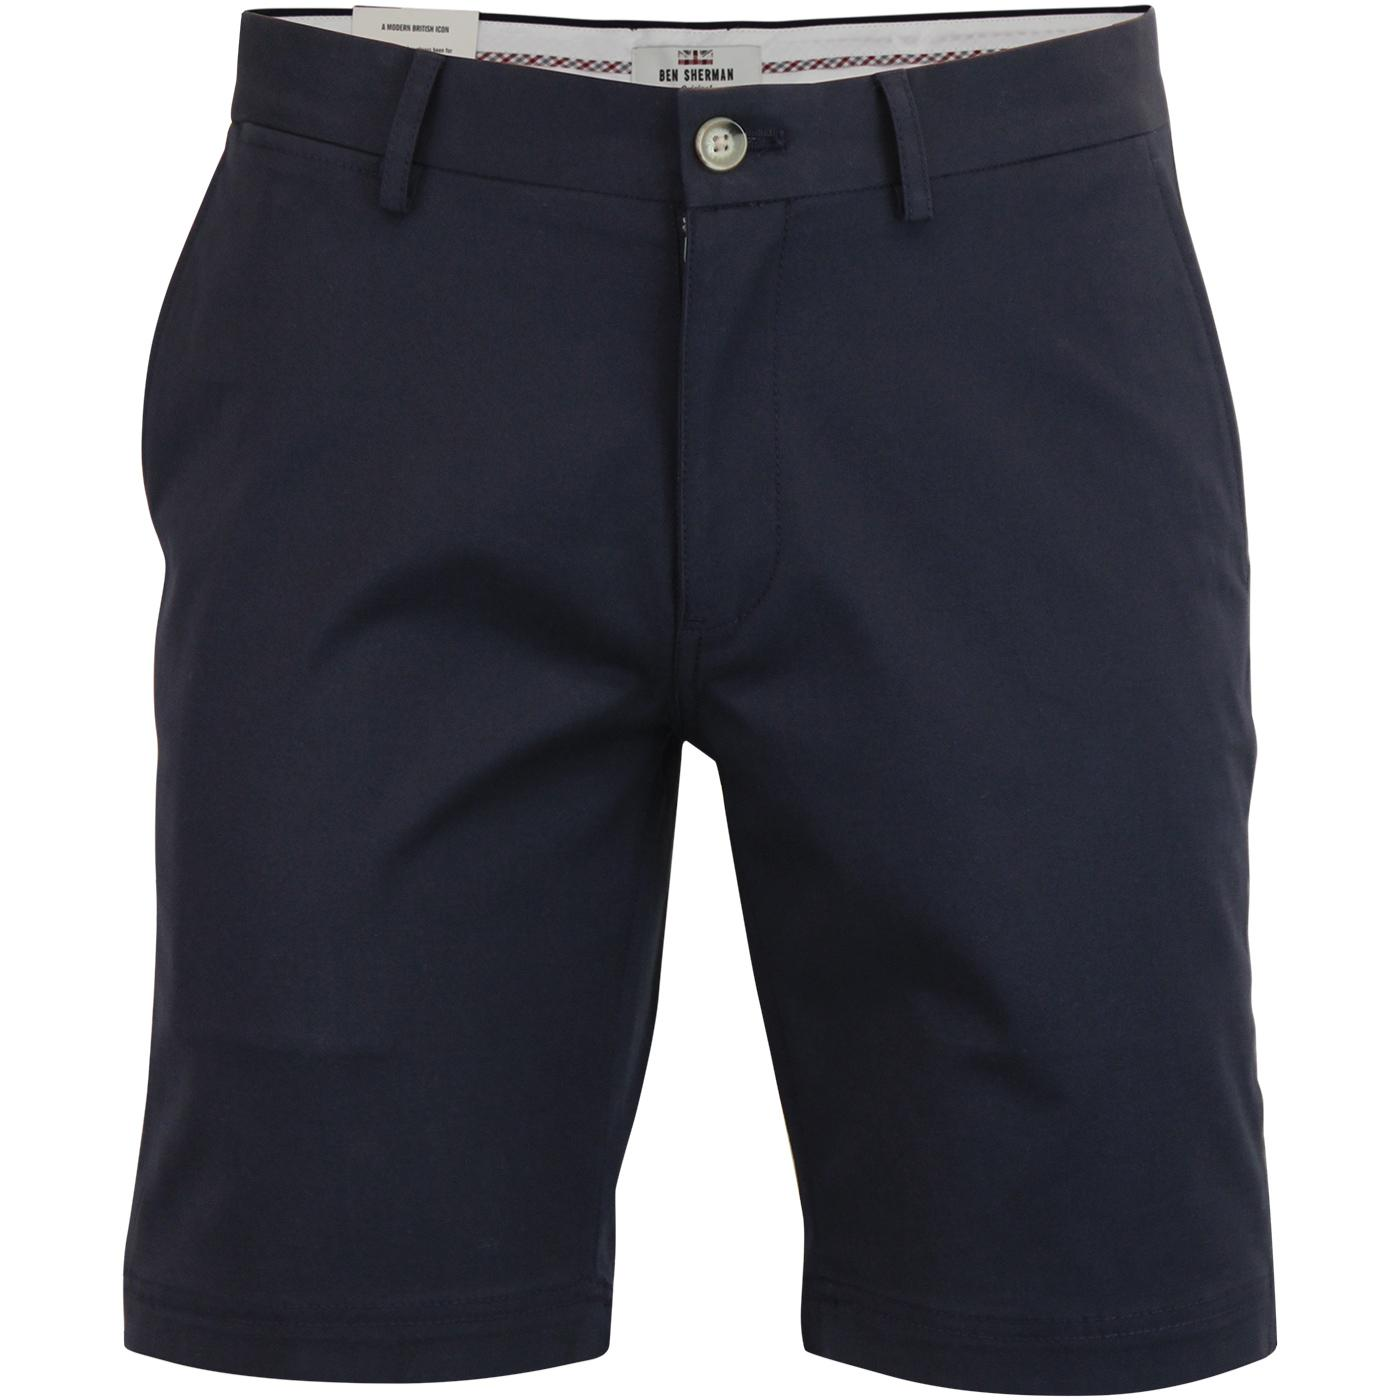 BEN SHERMAN Men's Retro Mod Chino Shorts NAVY